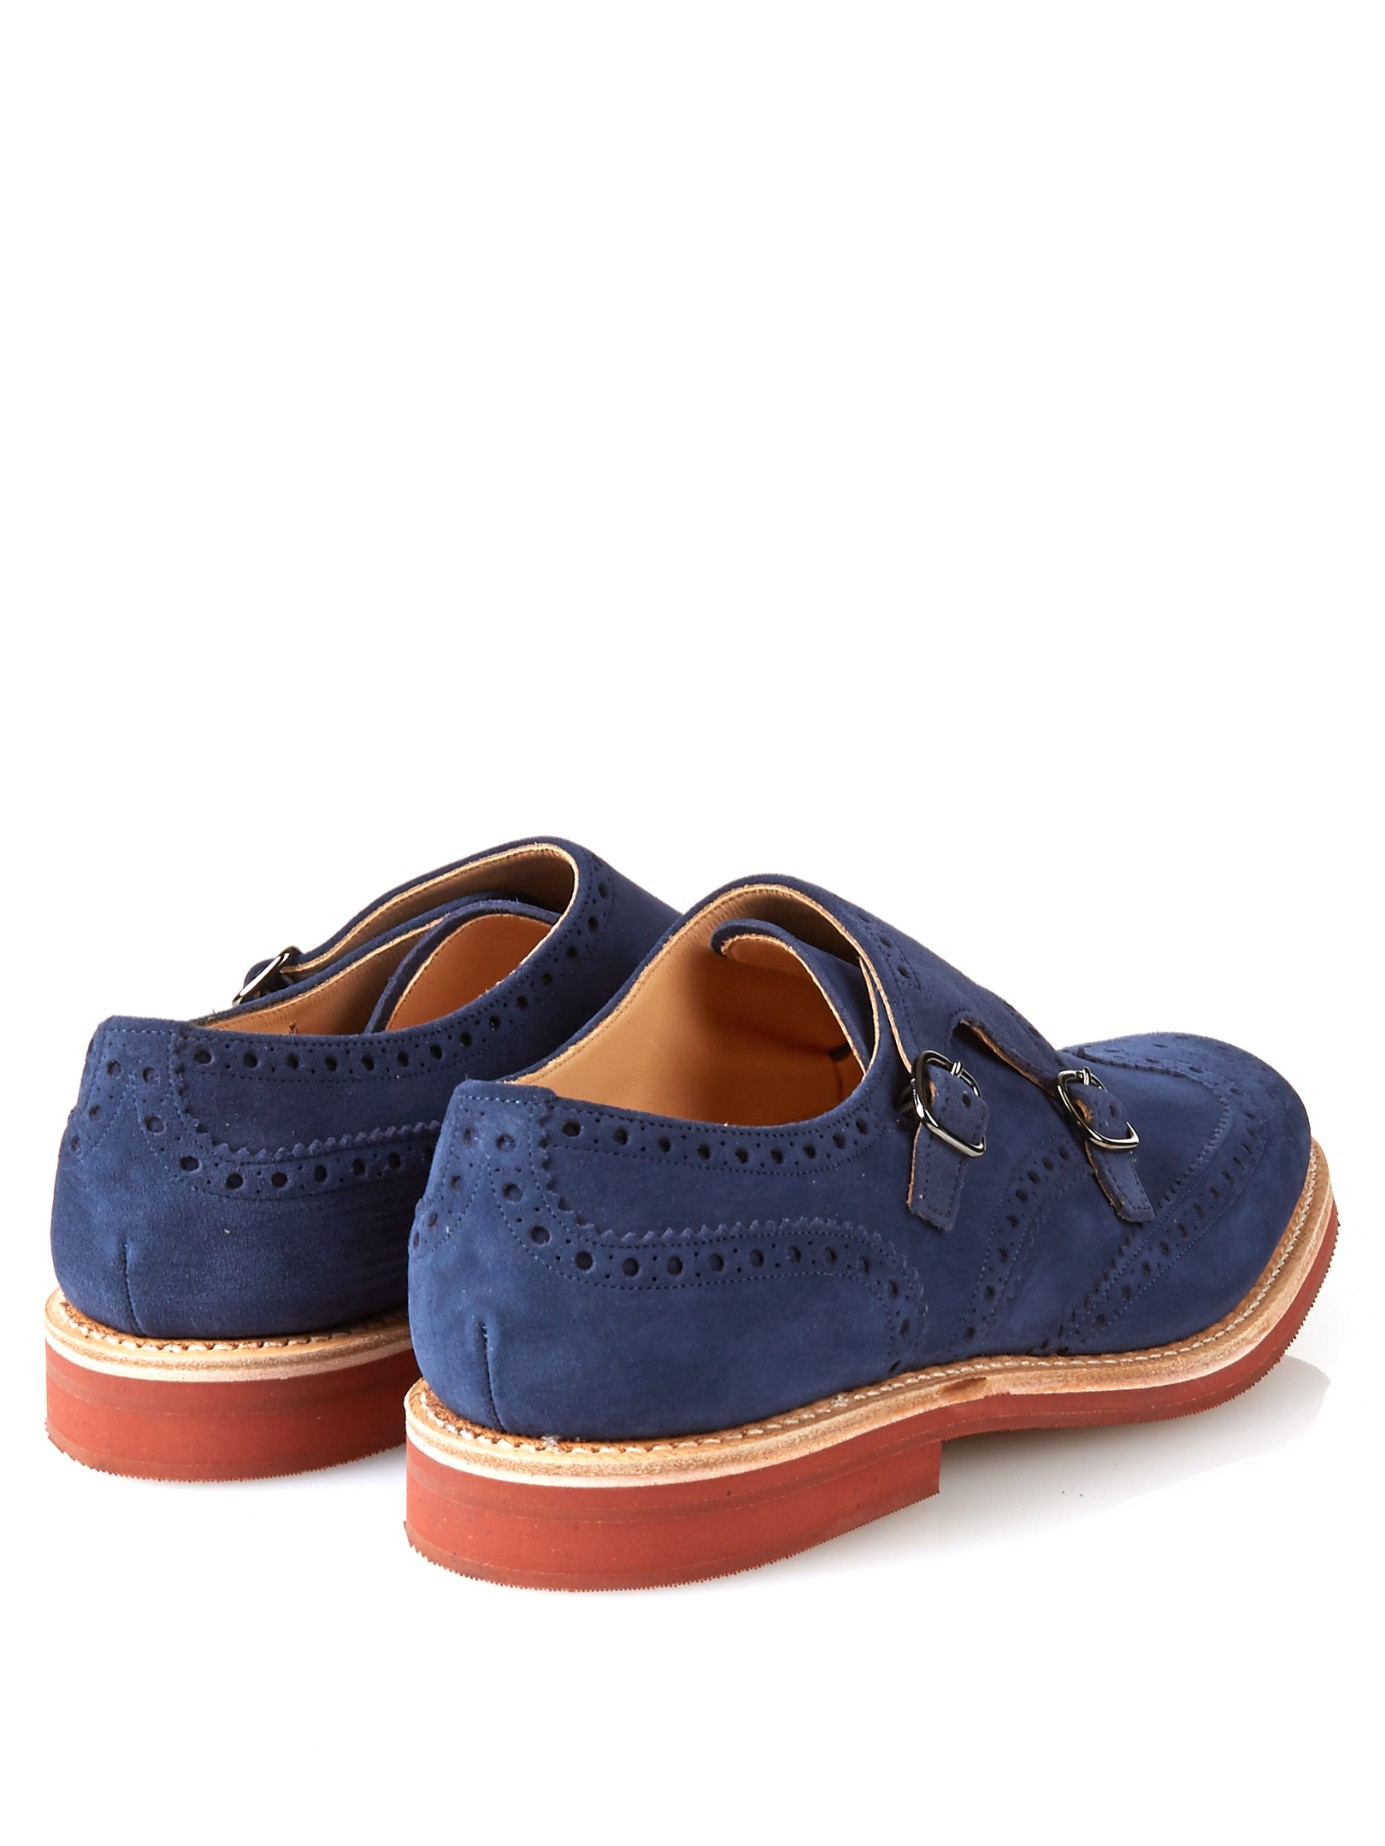 Church Blue Suede Shoes Oleather Lace